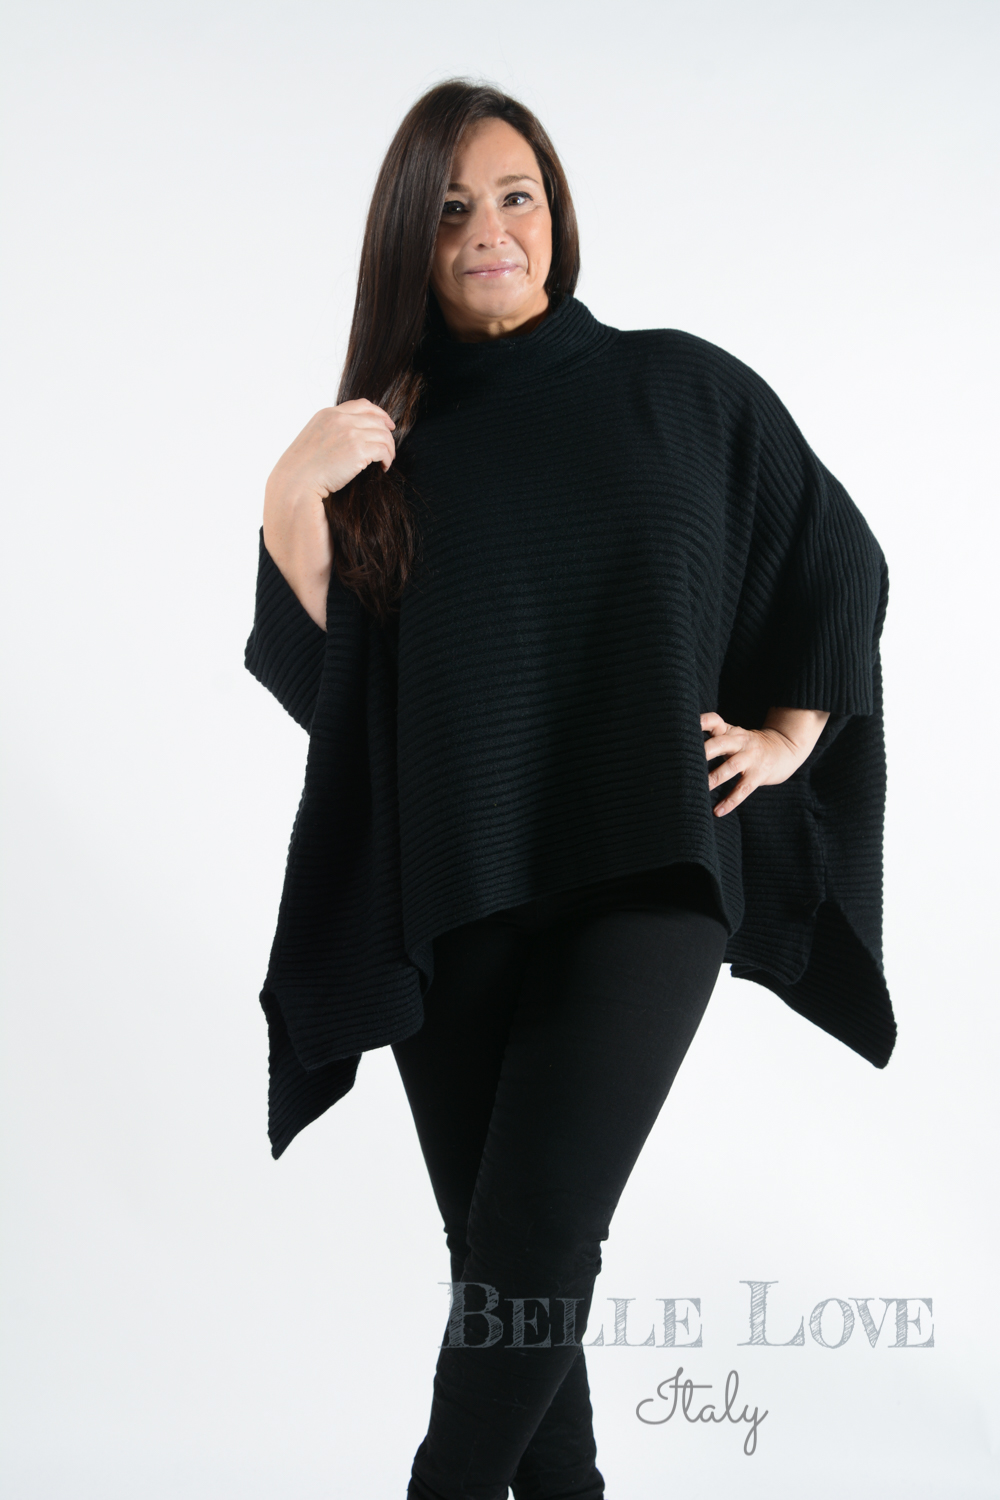 Belle Love Italy Ashford Ribbed Poncho